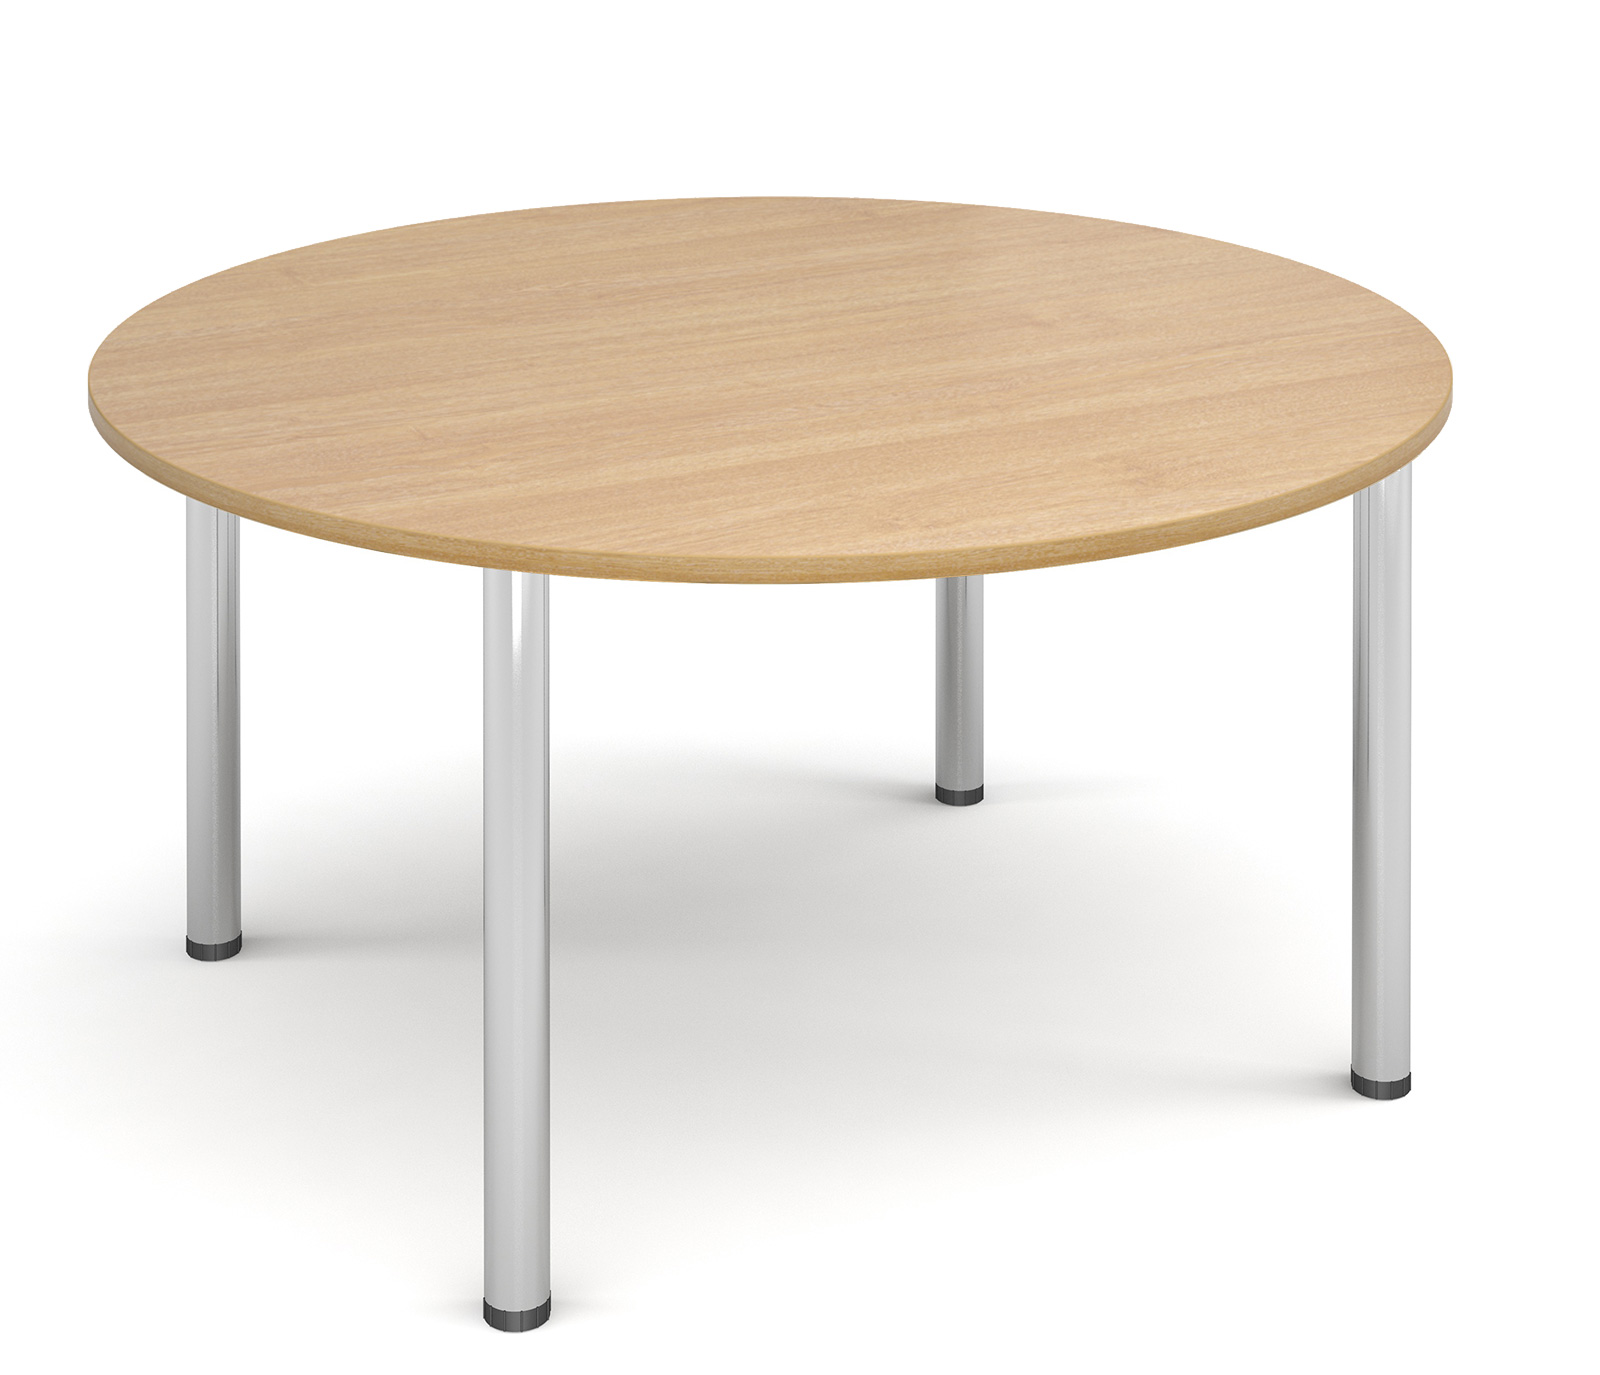 1200mm diameter Top + Chrome radial Legs - Oak